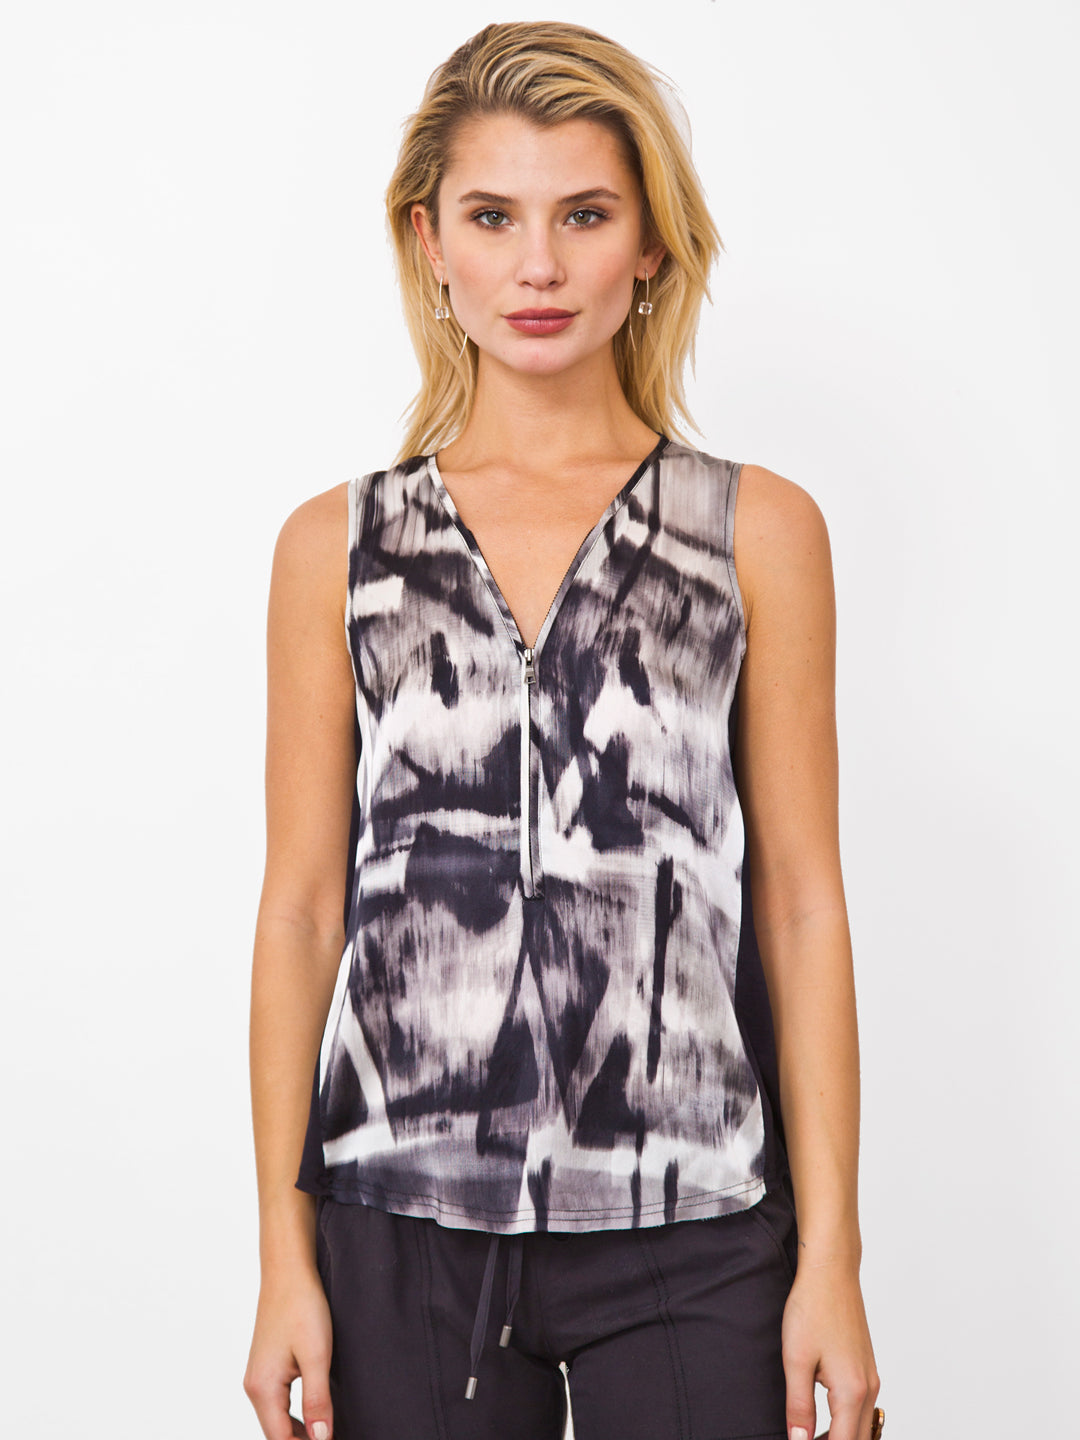 Go Zippy Tank Luxe Printed - It's All A Blur